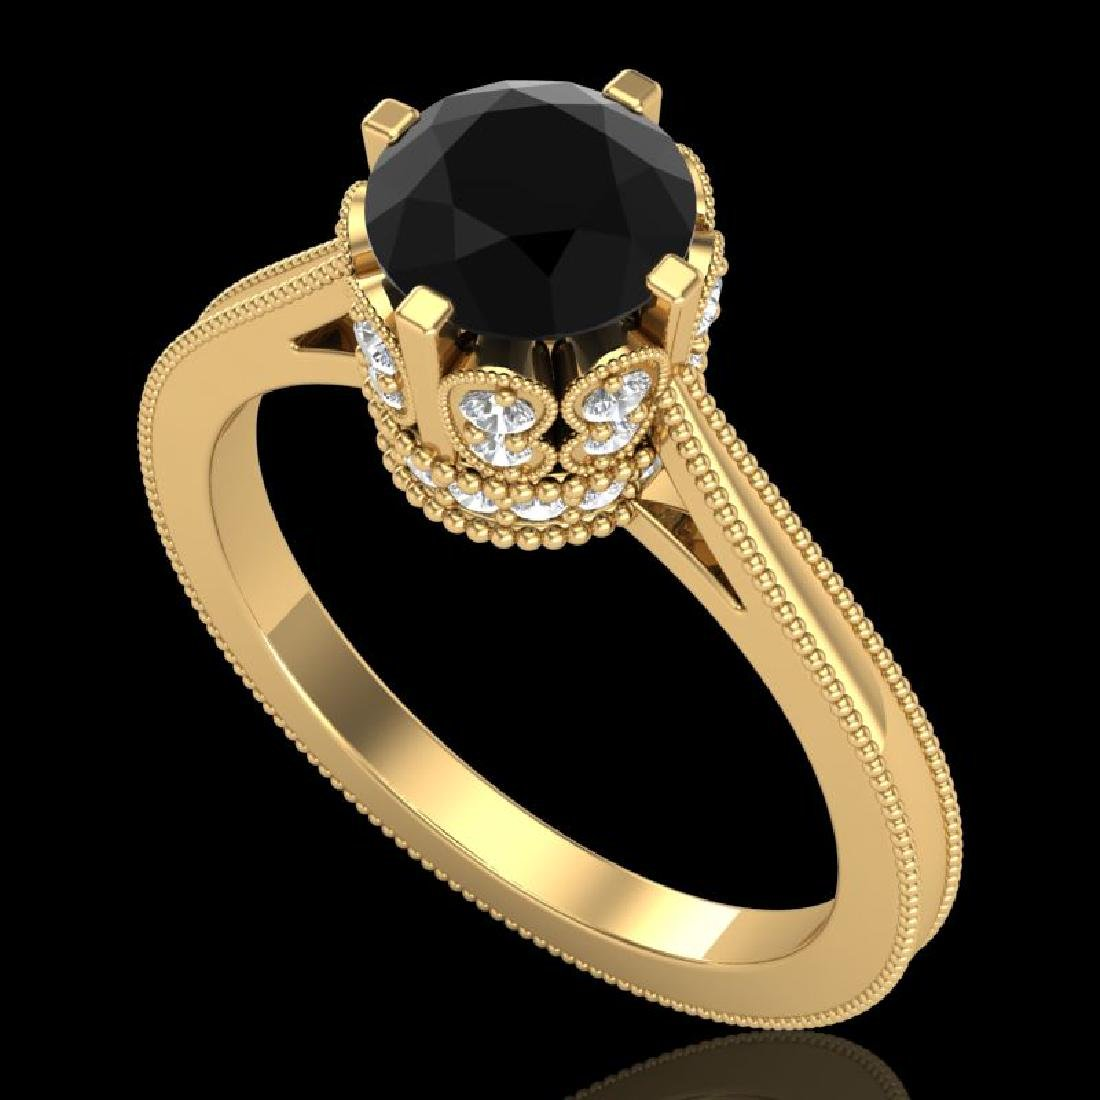 1.5 CTW Fancy Black Diamond Solitaire Engagement Art